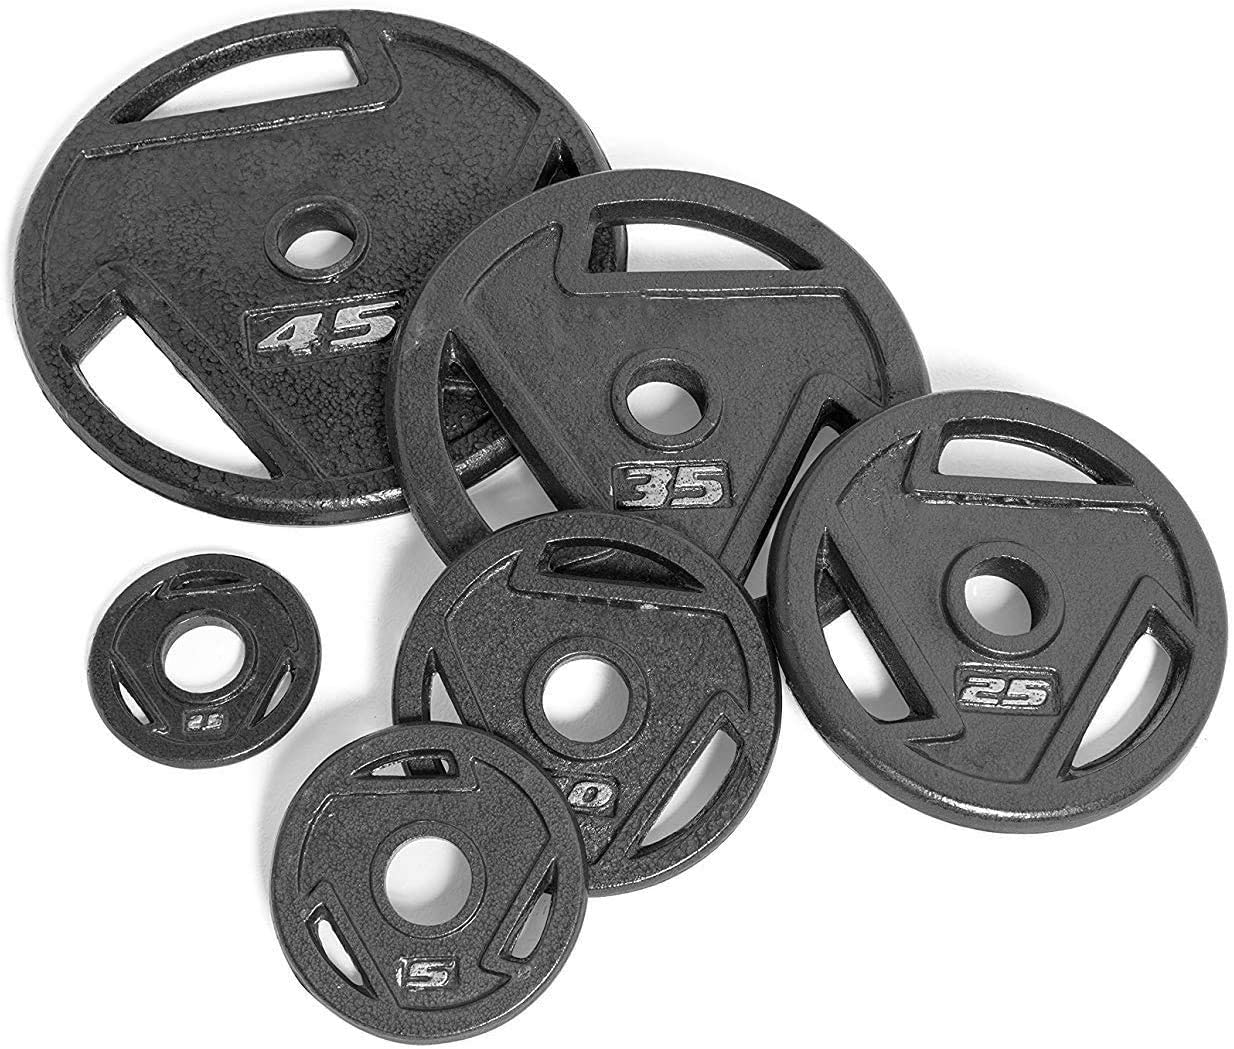 Set of 2 Cast Iron. New CAP Barbell 2 Inch Olympic Grip Plates 5 Pound